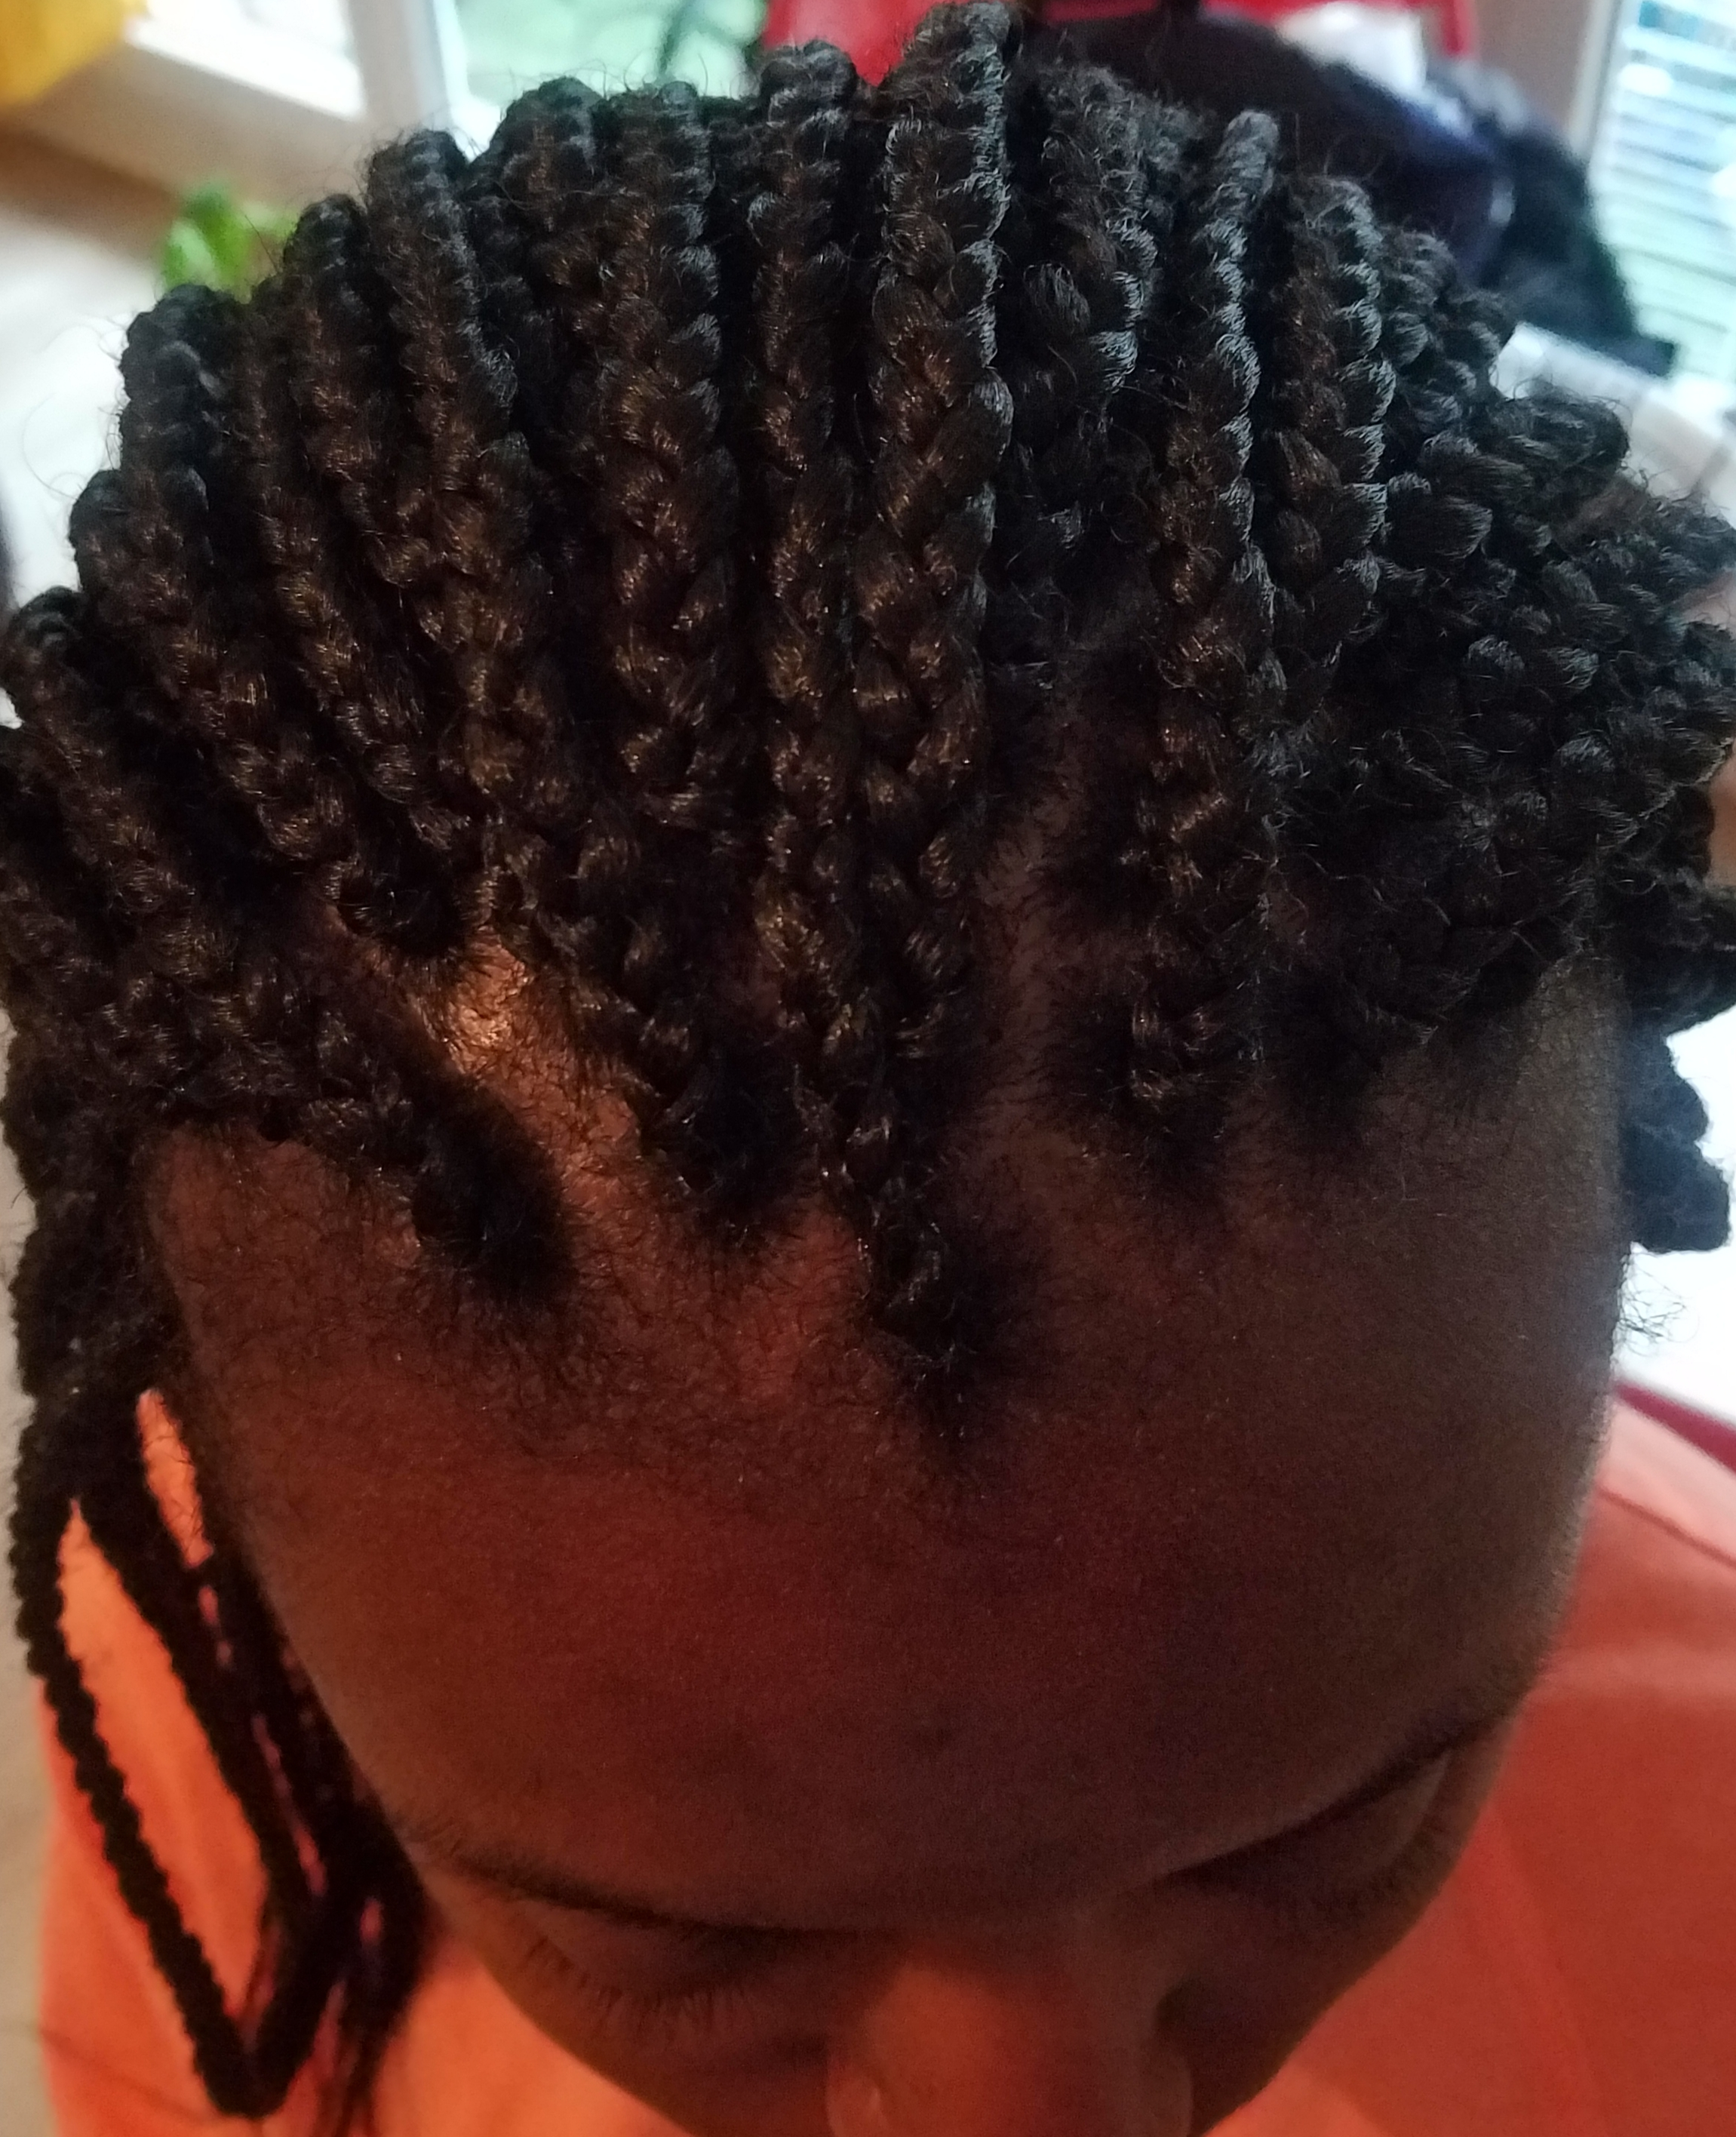 salon de coiffure afro tresse tresses box braids crochet braids vanilles tissages paris 75 77 78 91 92 93 94 95 TQFEJLYQ